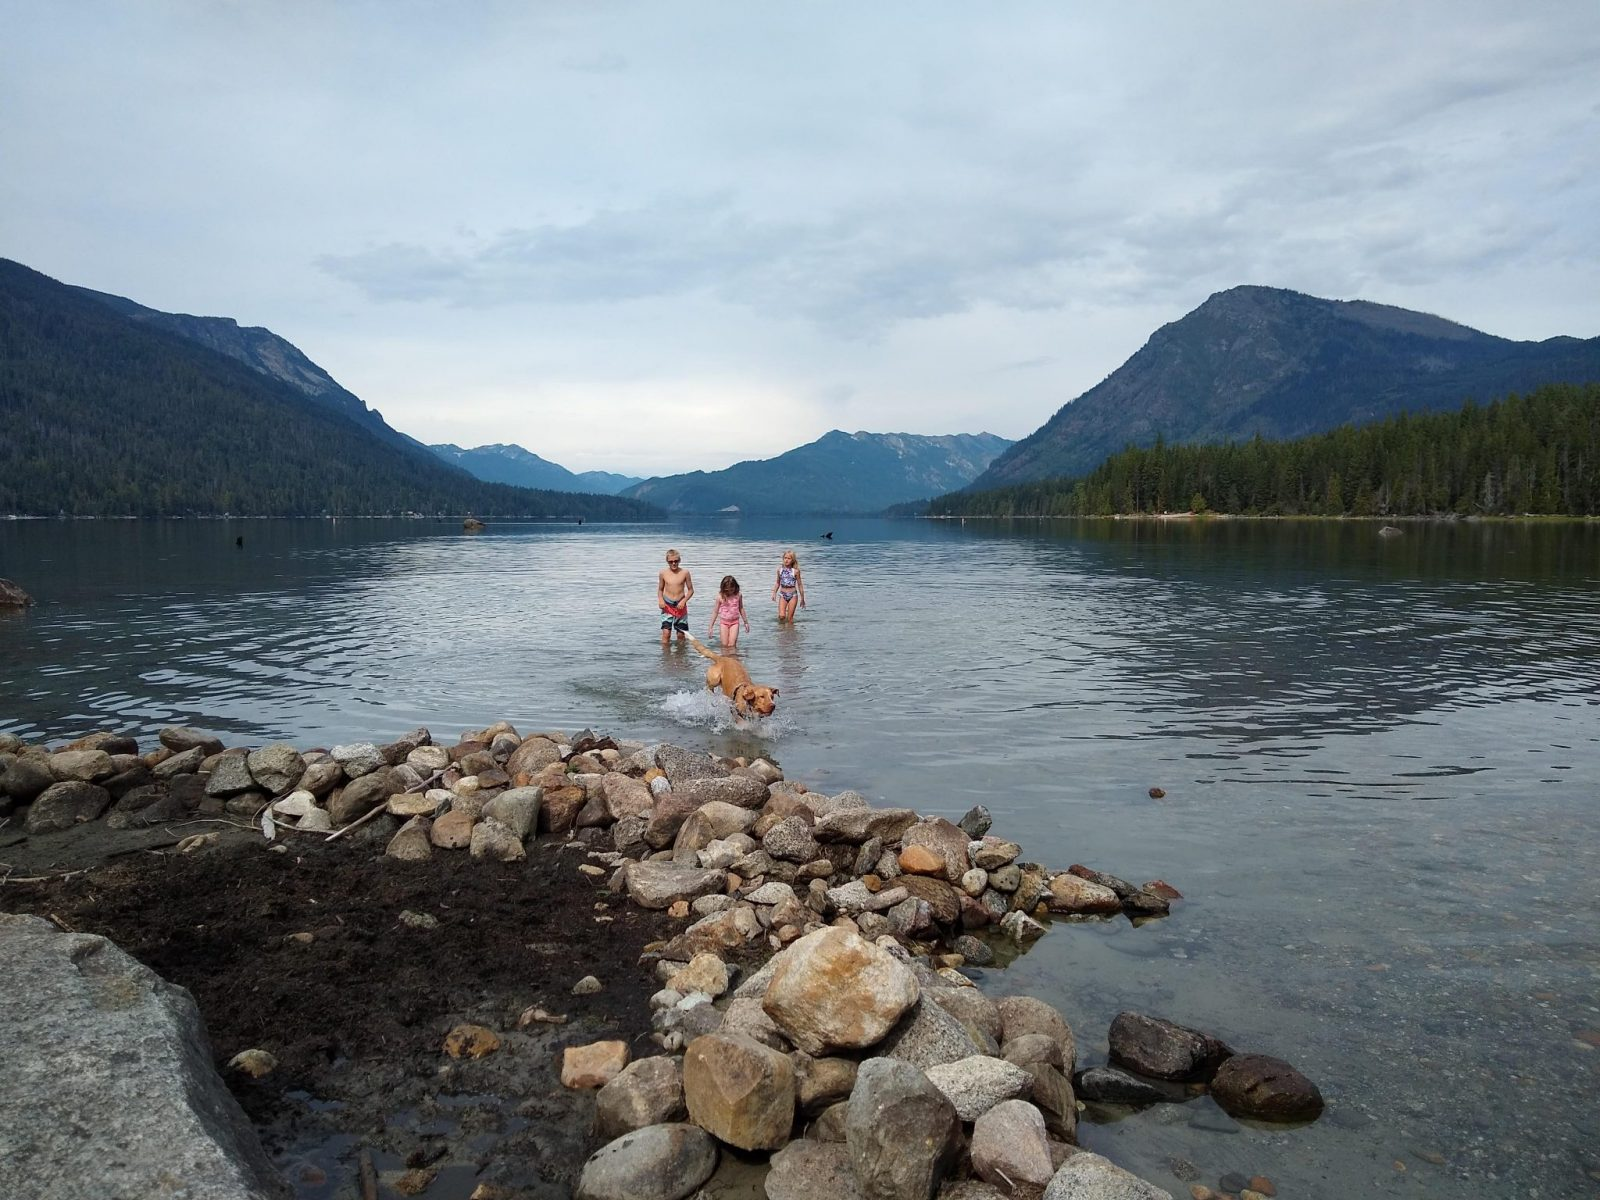 Three kinds and a dog playing in the water at the rocky shore of lake wenatchee on an overcast day. Across the large lake there are forested hillsides and mountains